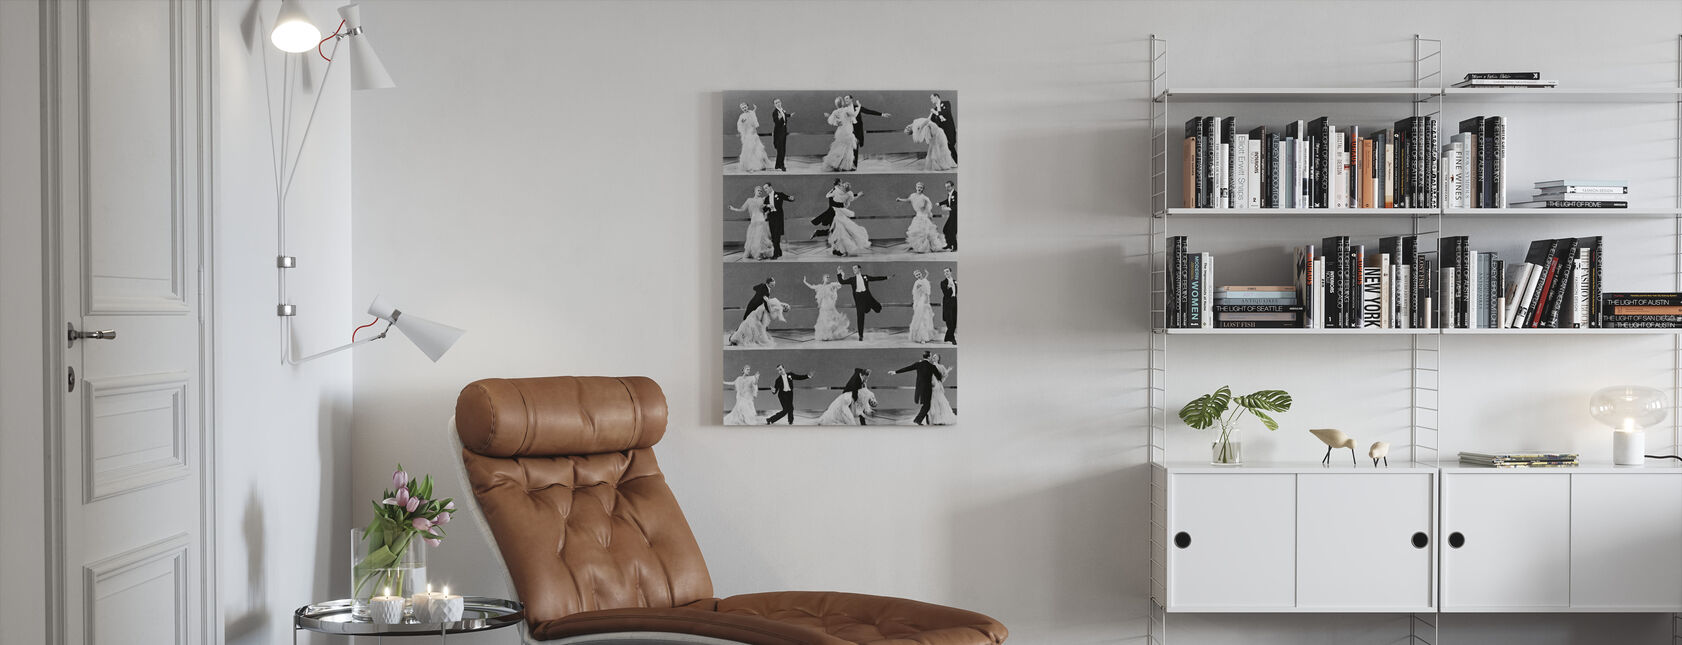 Top Hat - Ginger Rogers and Fred Astaire - Canvas print - Living Room